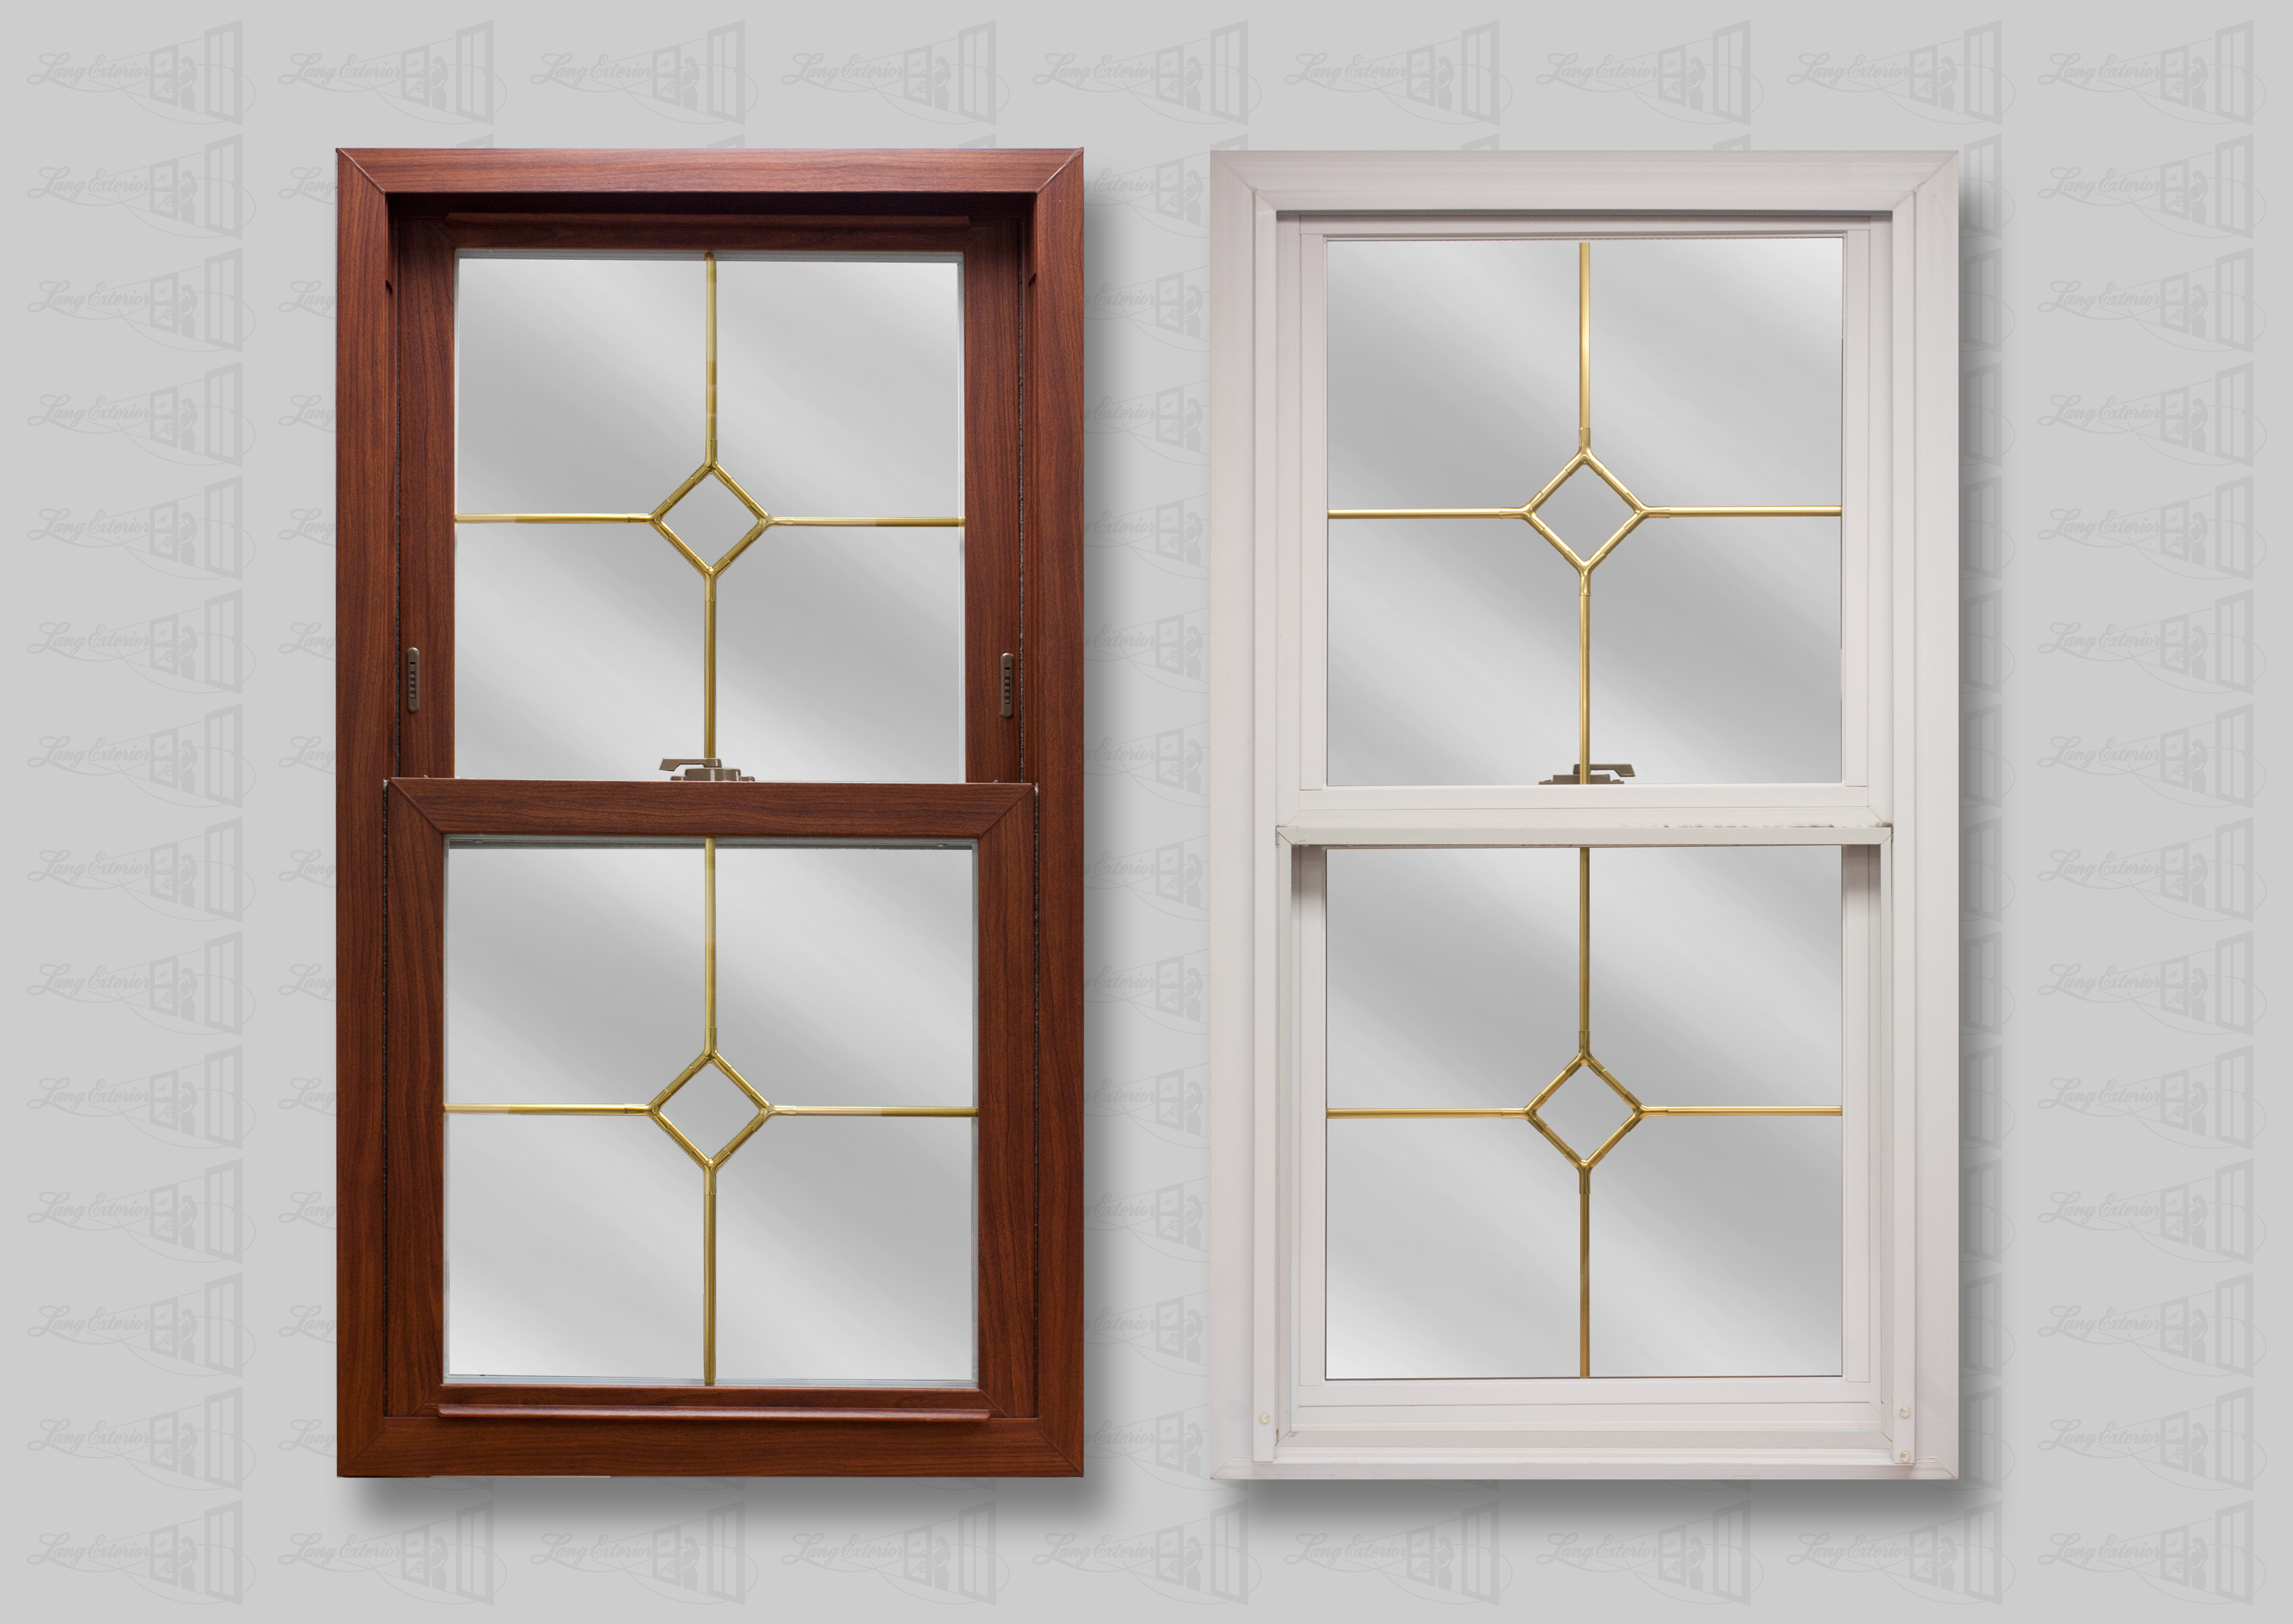 Lang Exterior Cherry Woodgrain on White with Middle Diamond Brass Grids